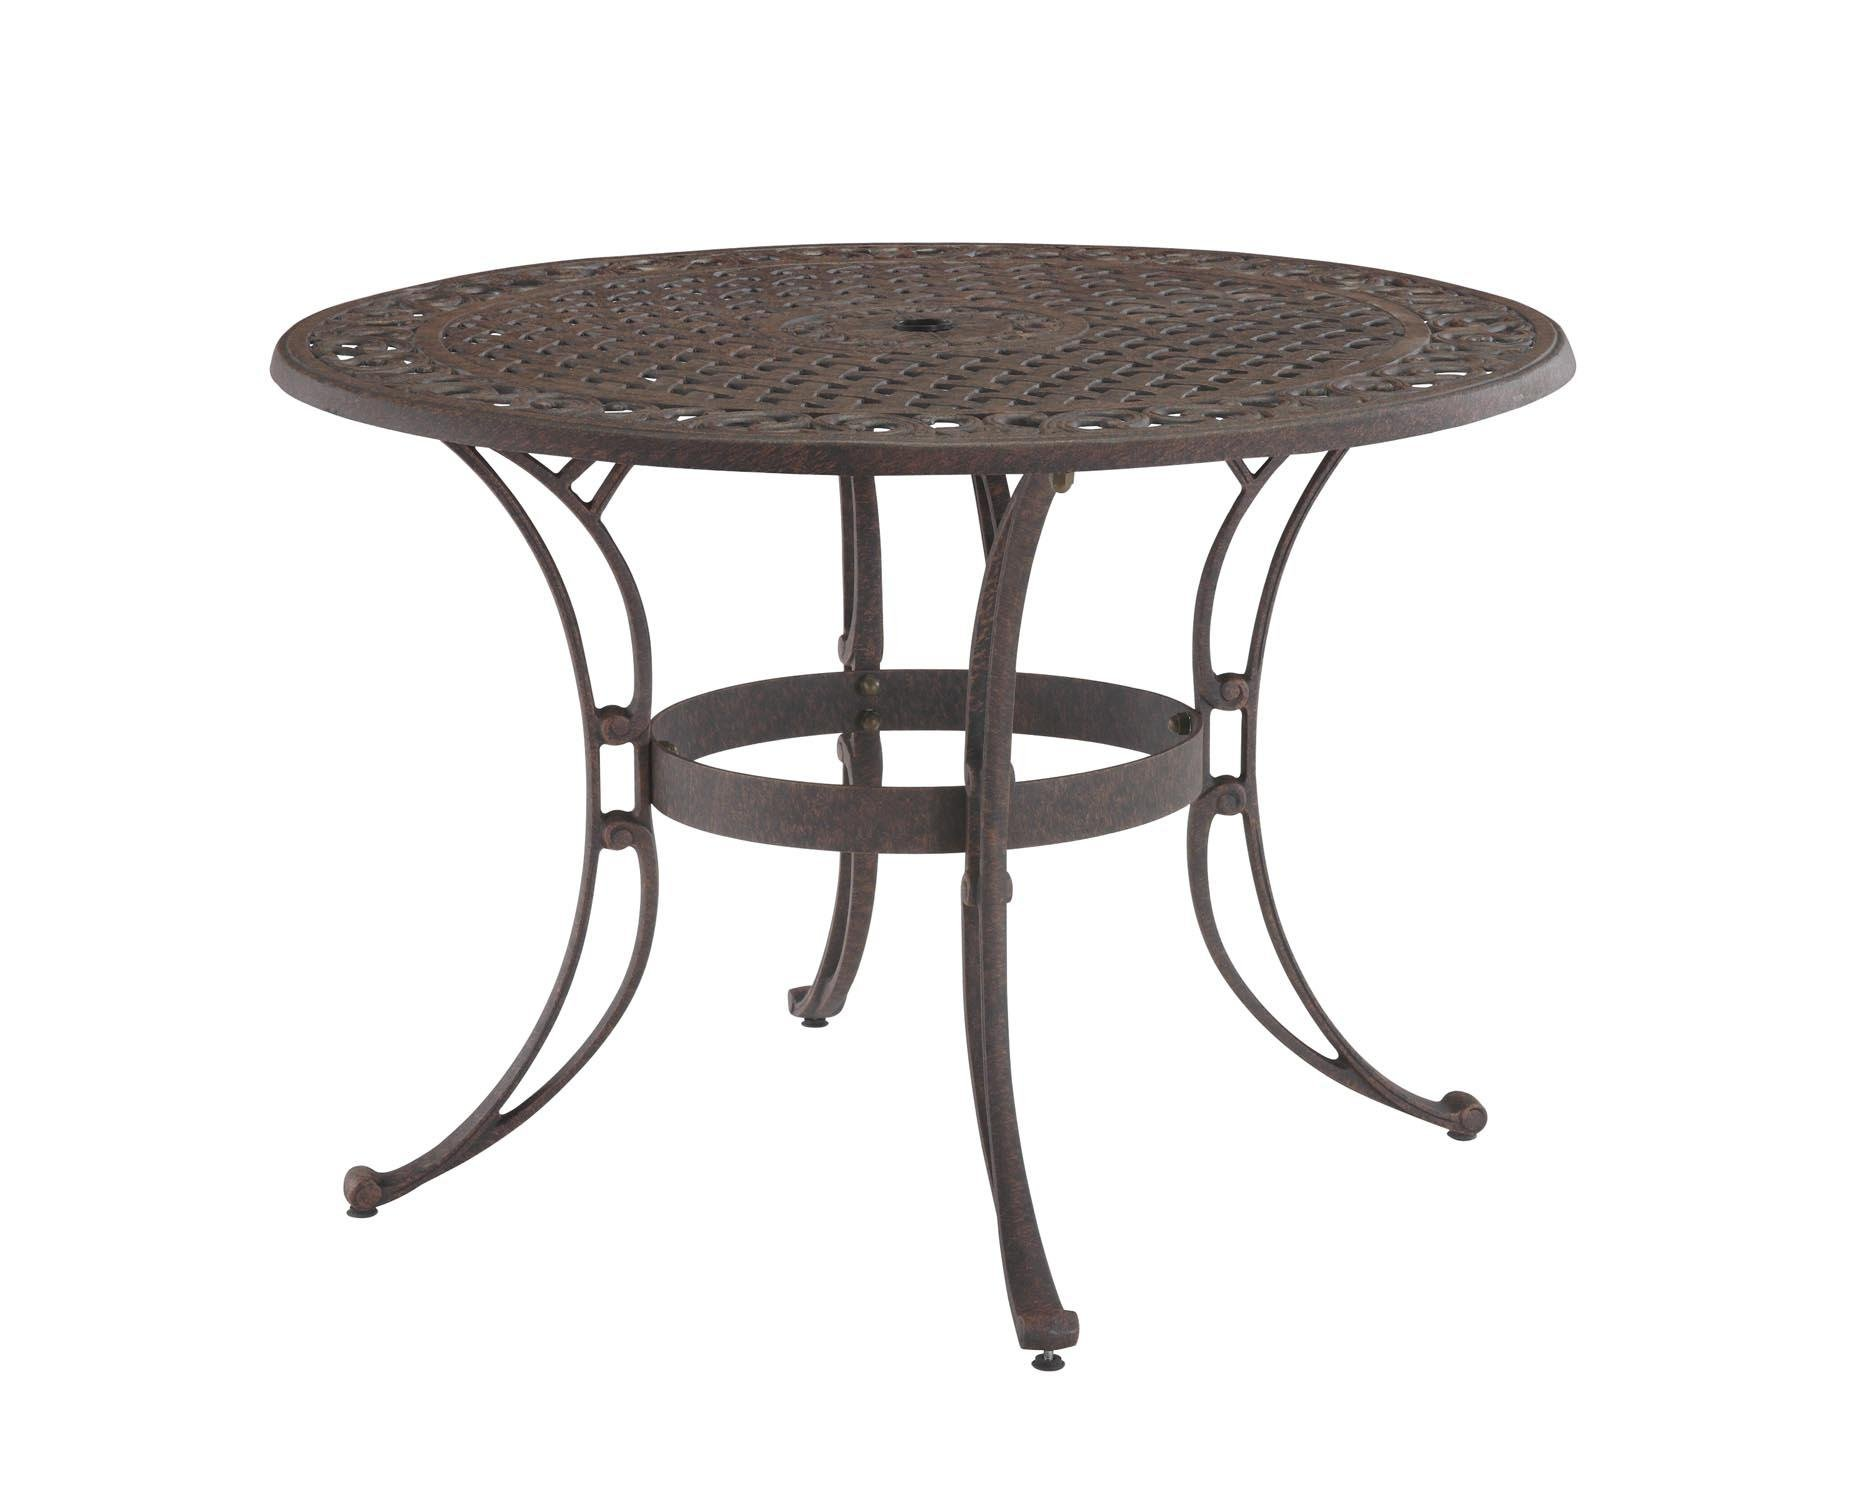 Biscayne Bronze Round 48-Inch Outdoor Dining Table by Home Styles